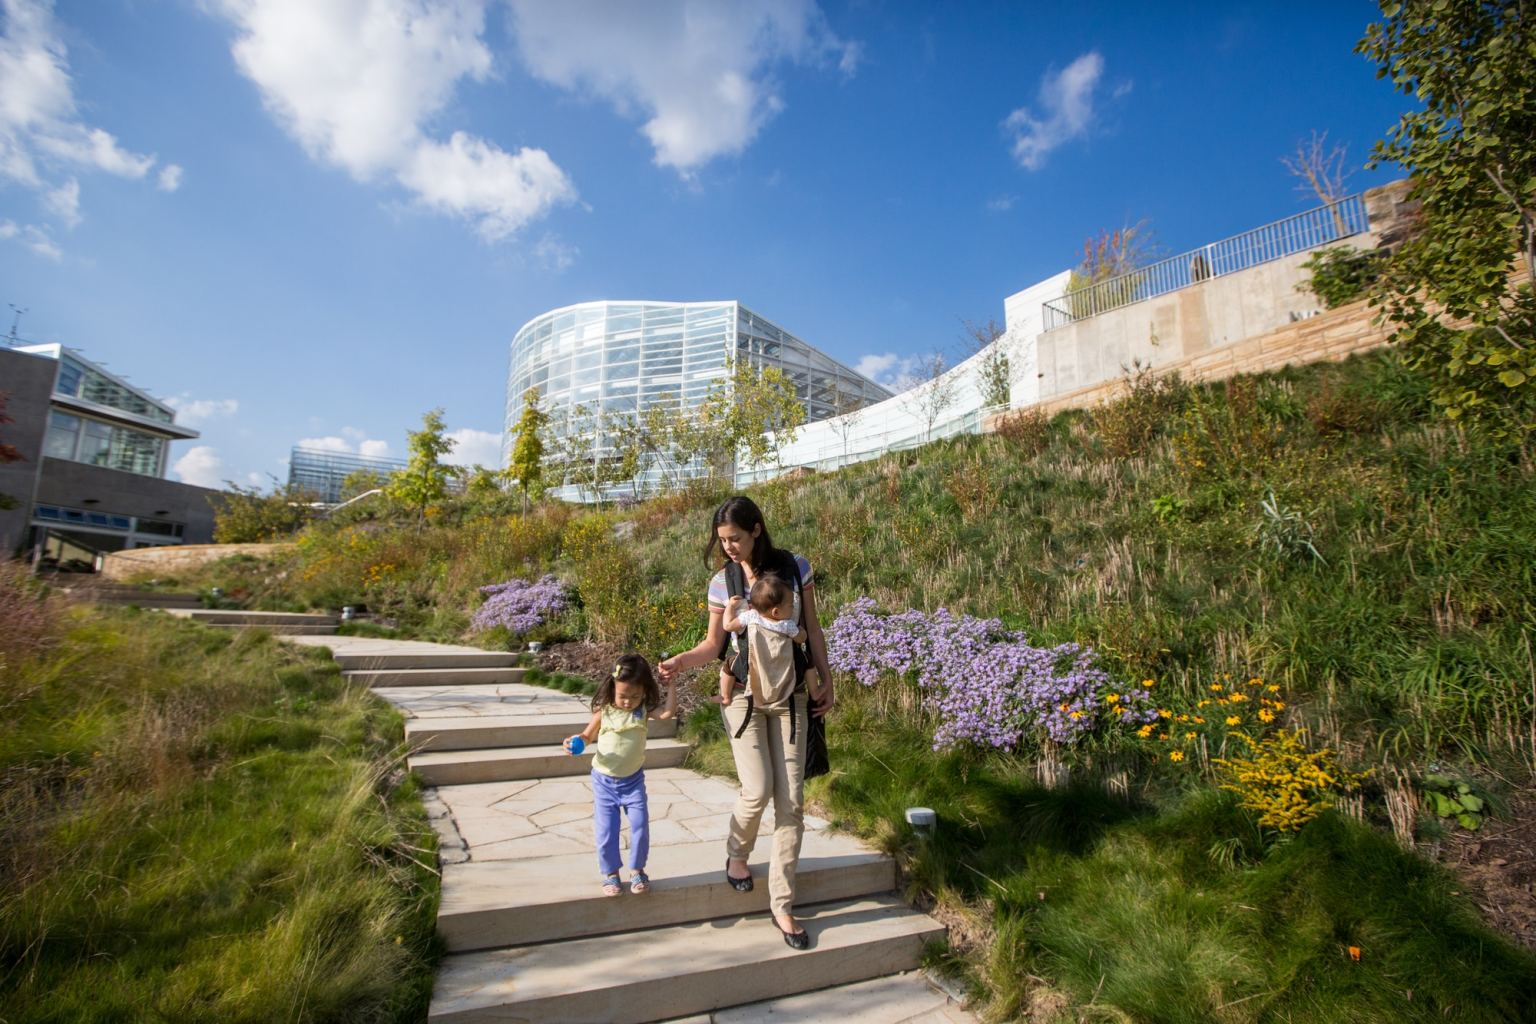 A mother with two small children walks down the steps of Phipps's nature walking tour next to the Center for Sustainable Landscapes.